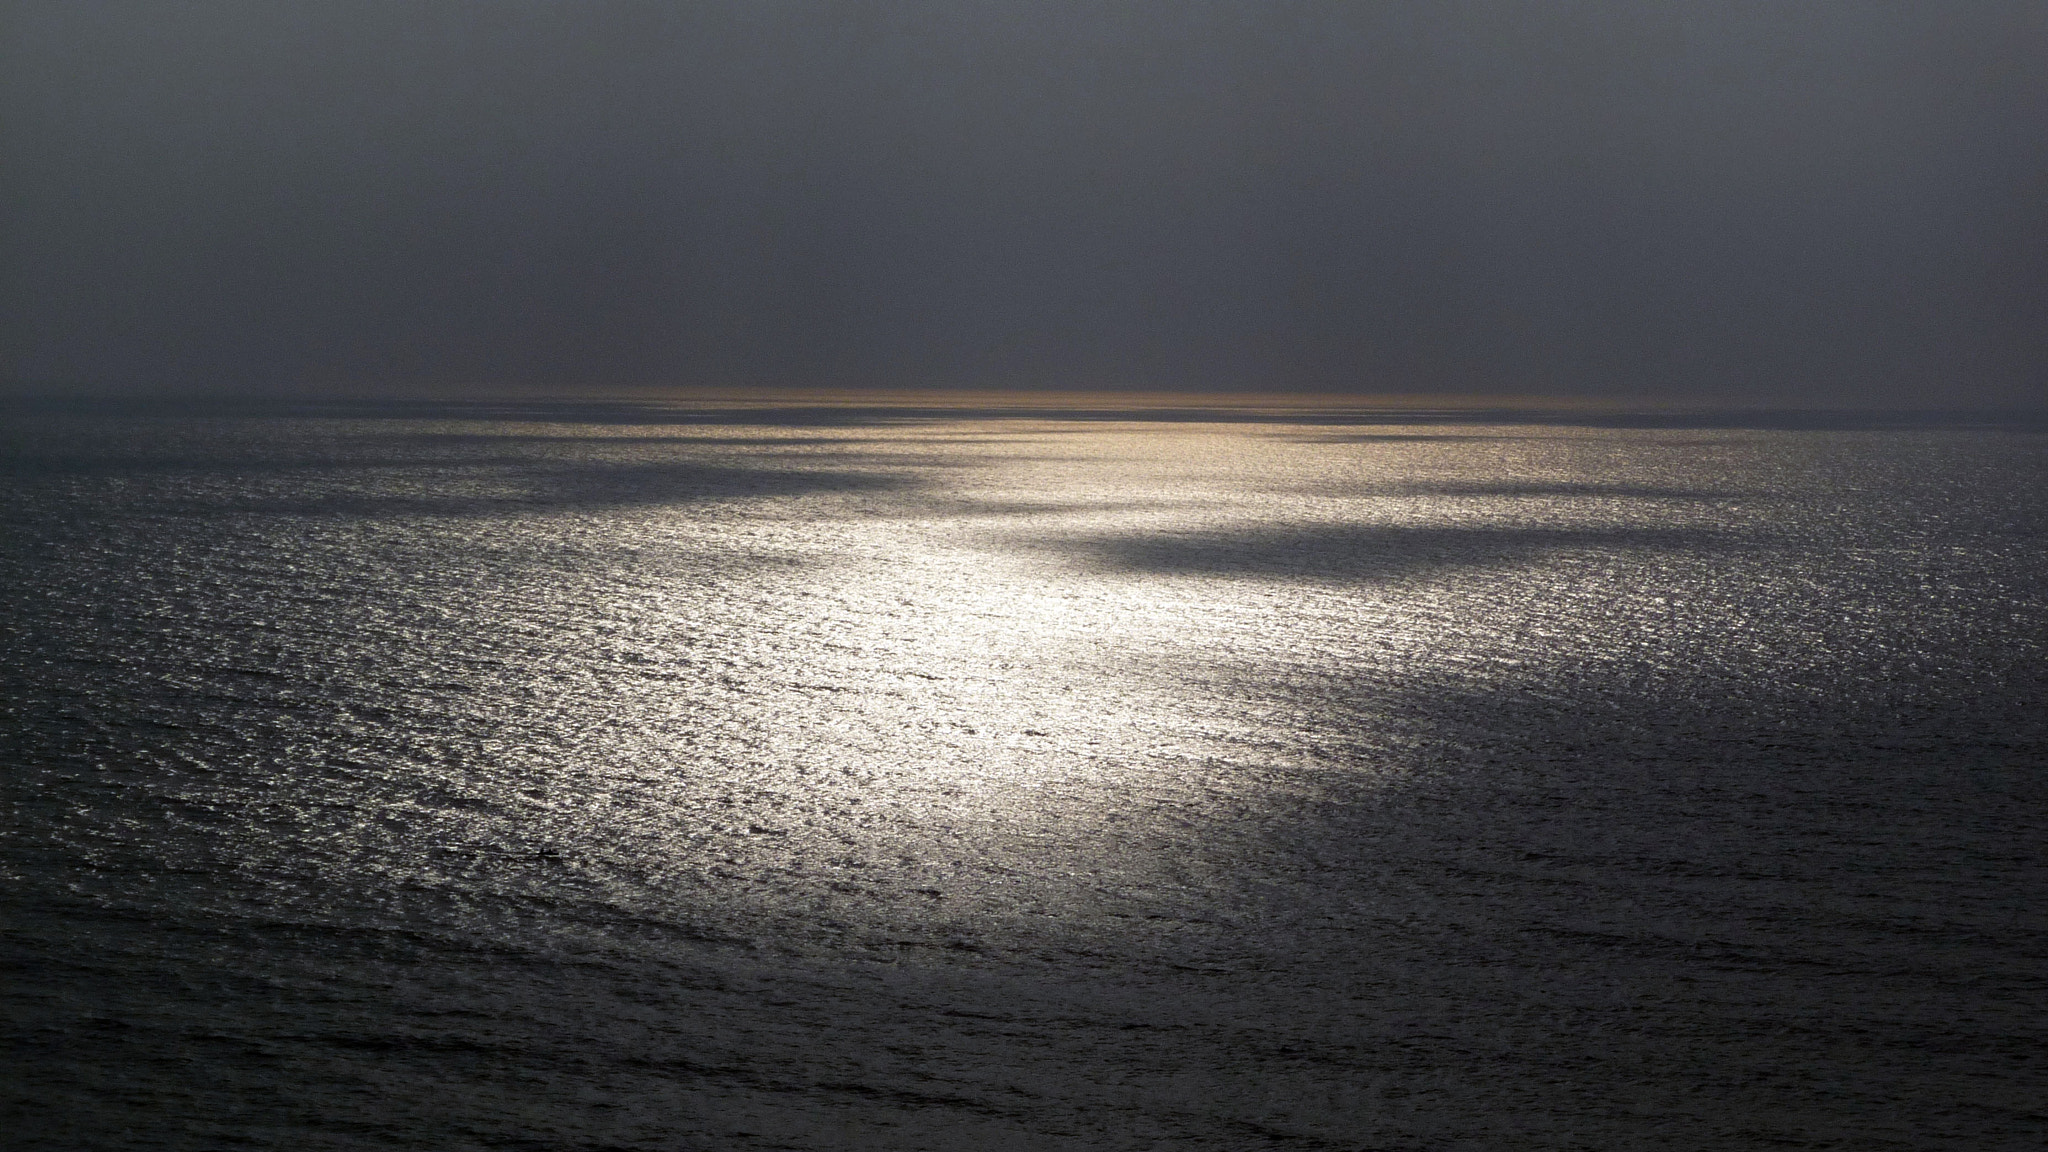 Photograph Light and water by Mohit Yadav on 500px